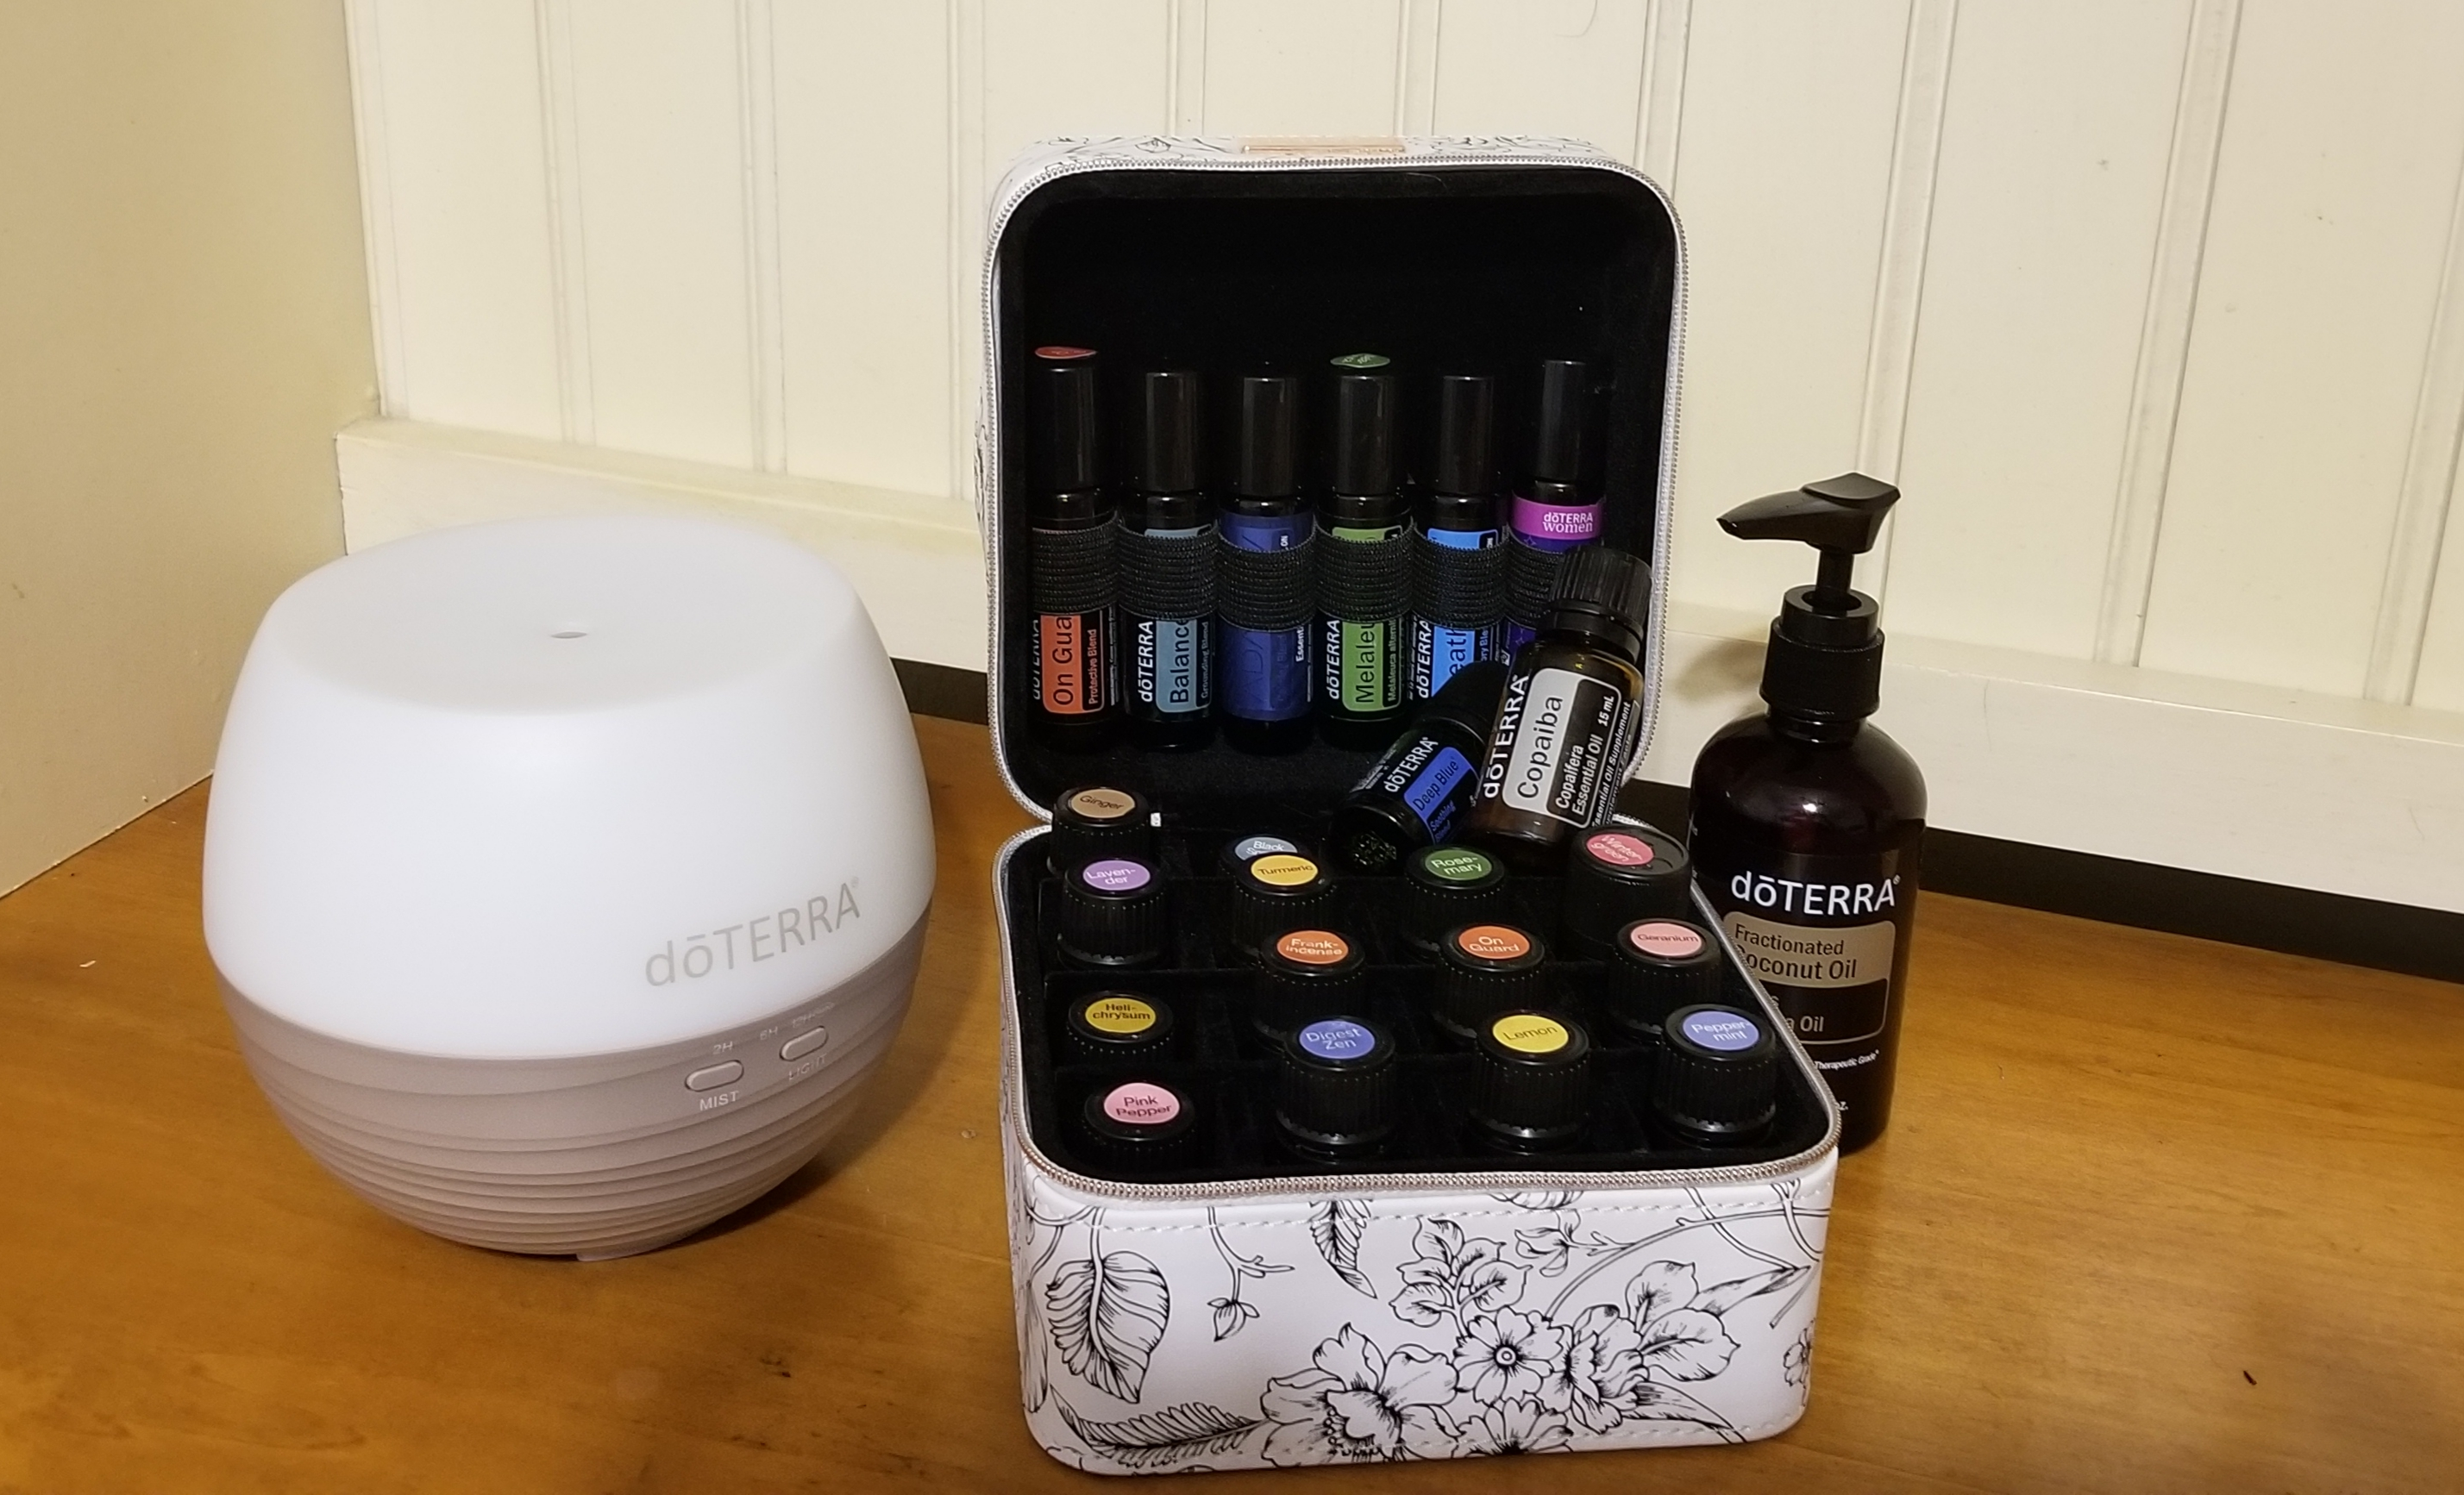 doTERRA Essential oils, diffuser and FCO